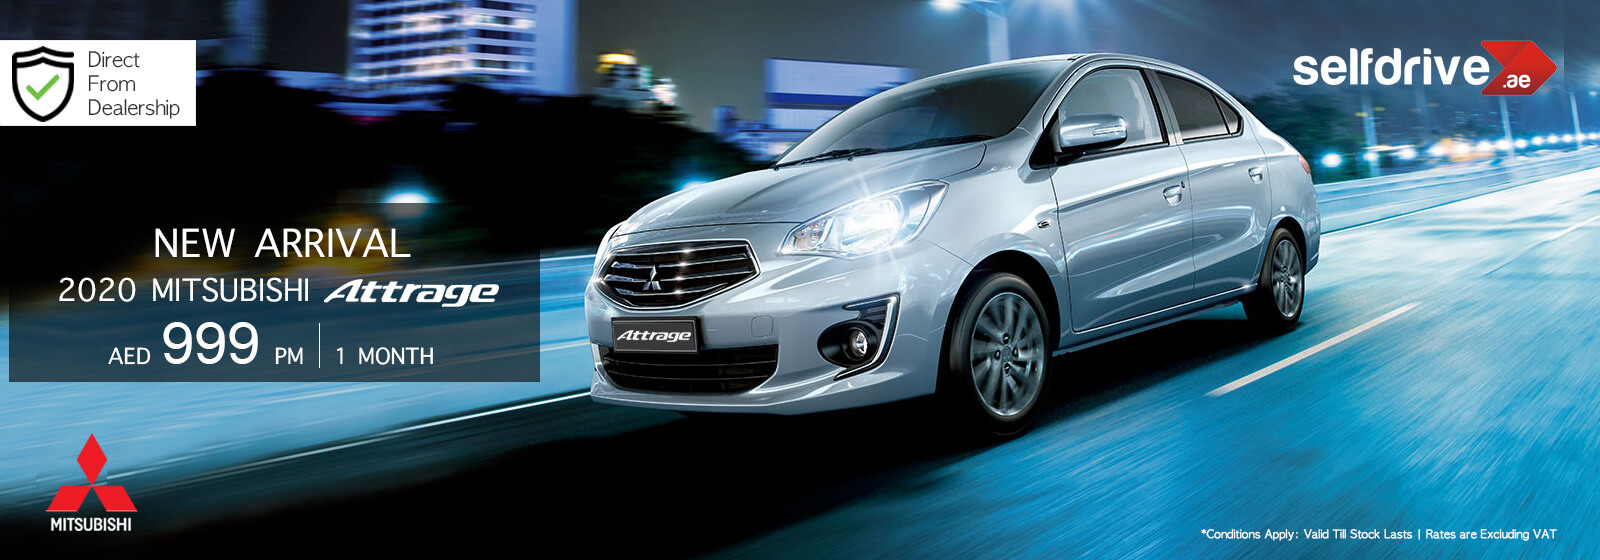 Exclusive offer on 2020 Mitsubishi Attrage